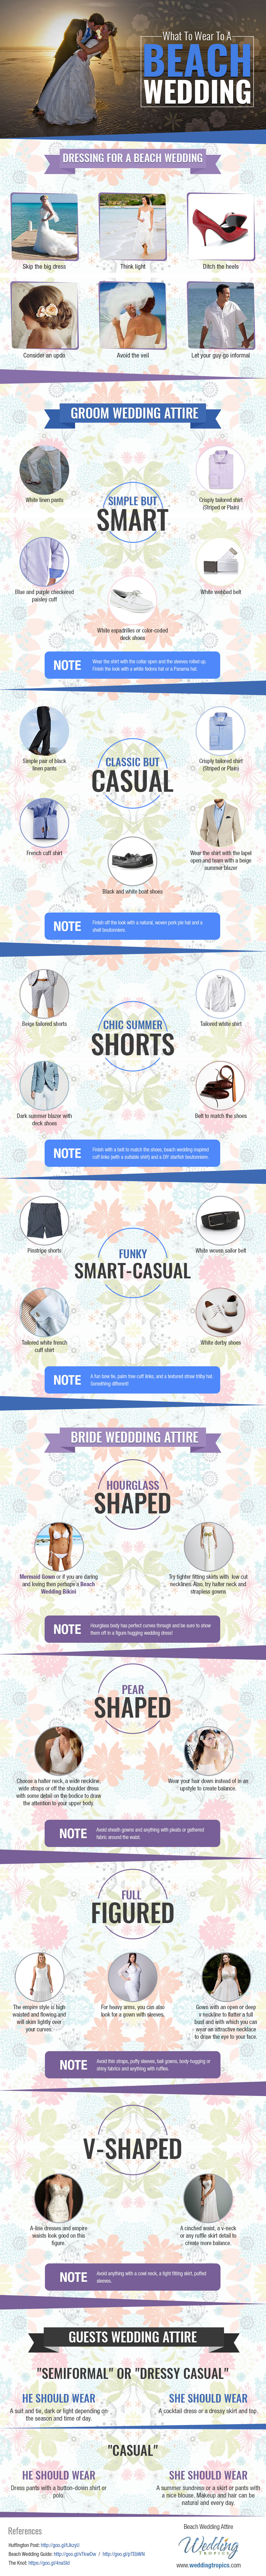 Infografic about What To Wear To A Beach Wedding